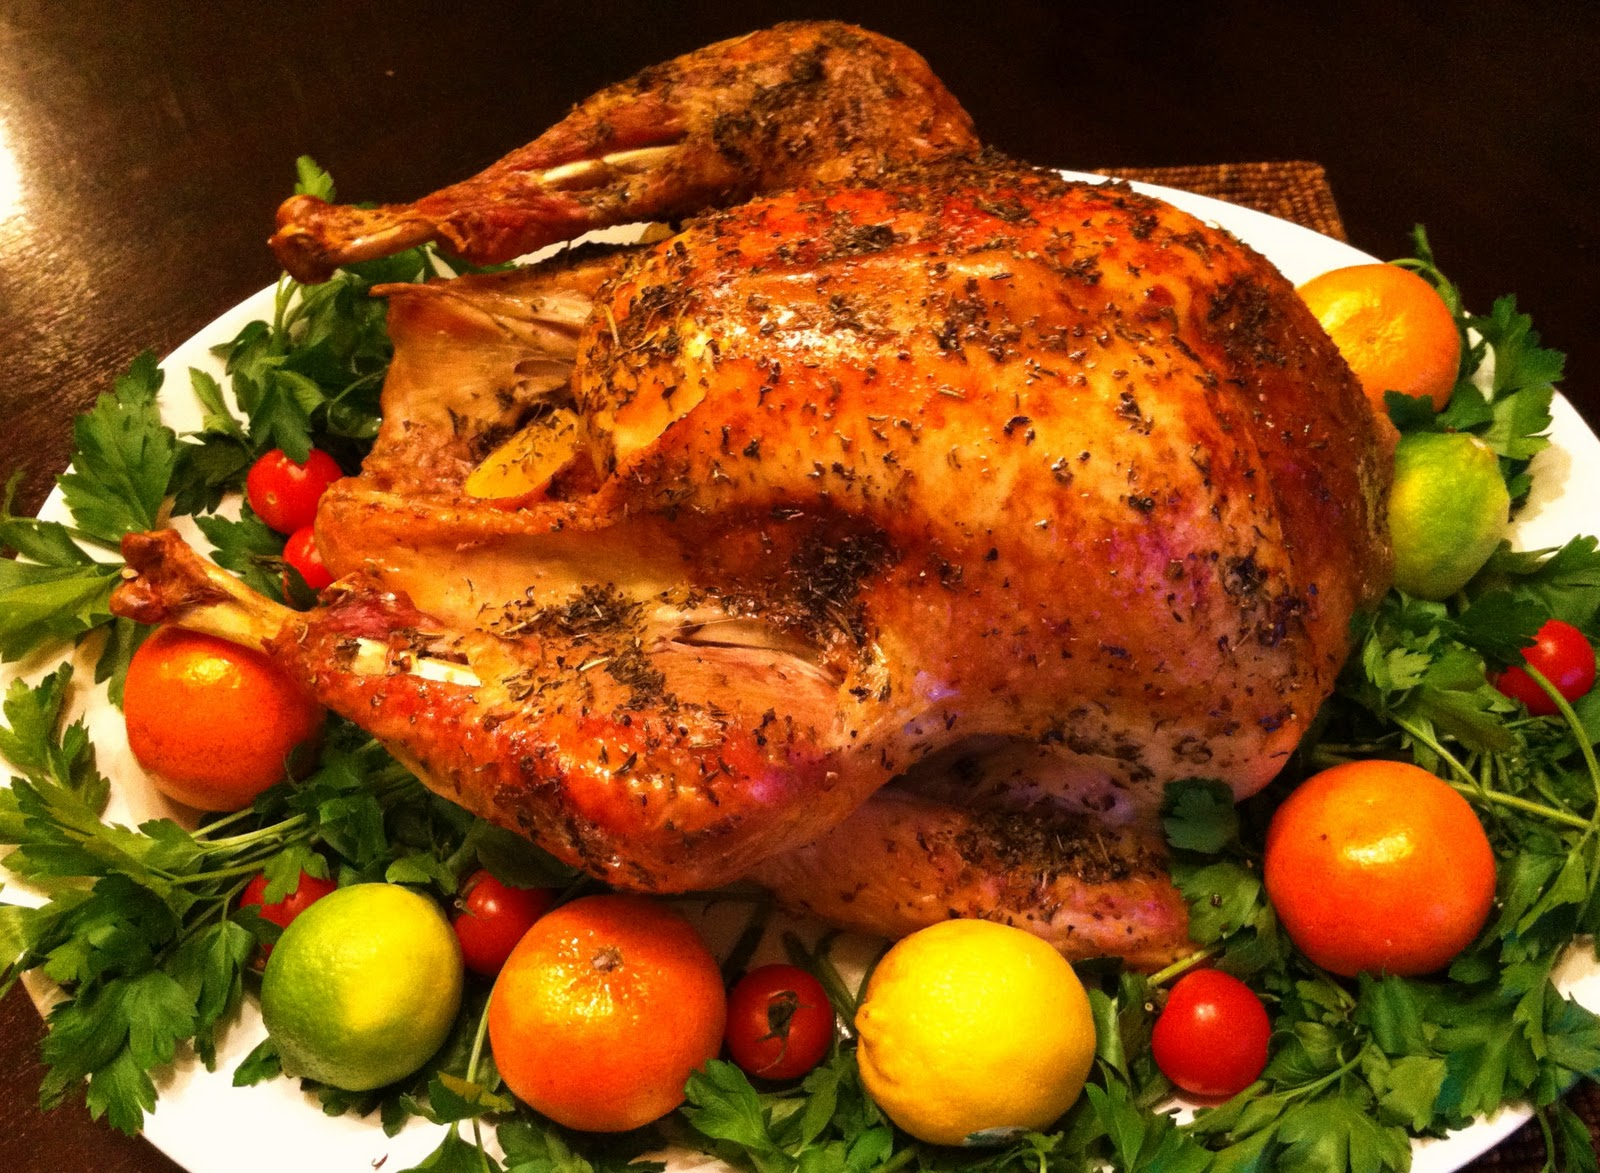 New ways to cook the same bird. (1.bp.blogspot.com)